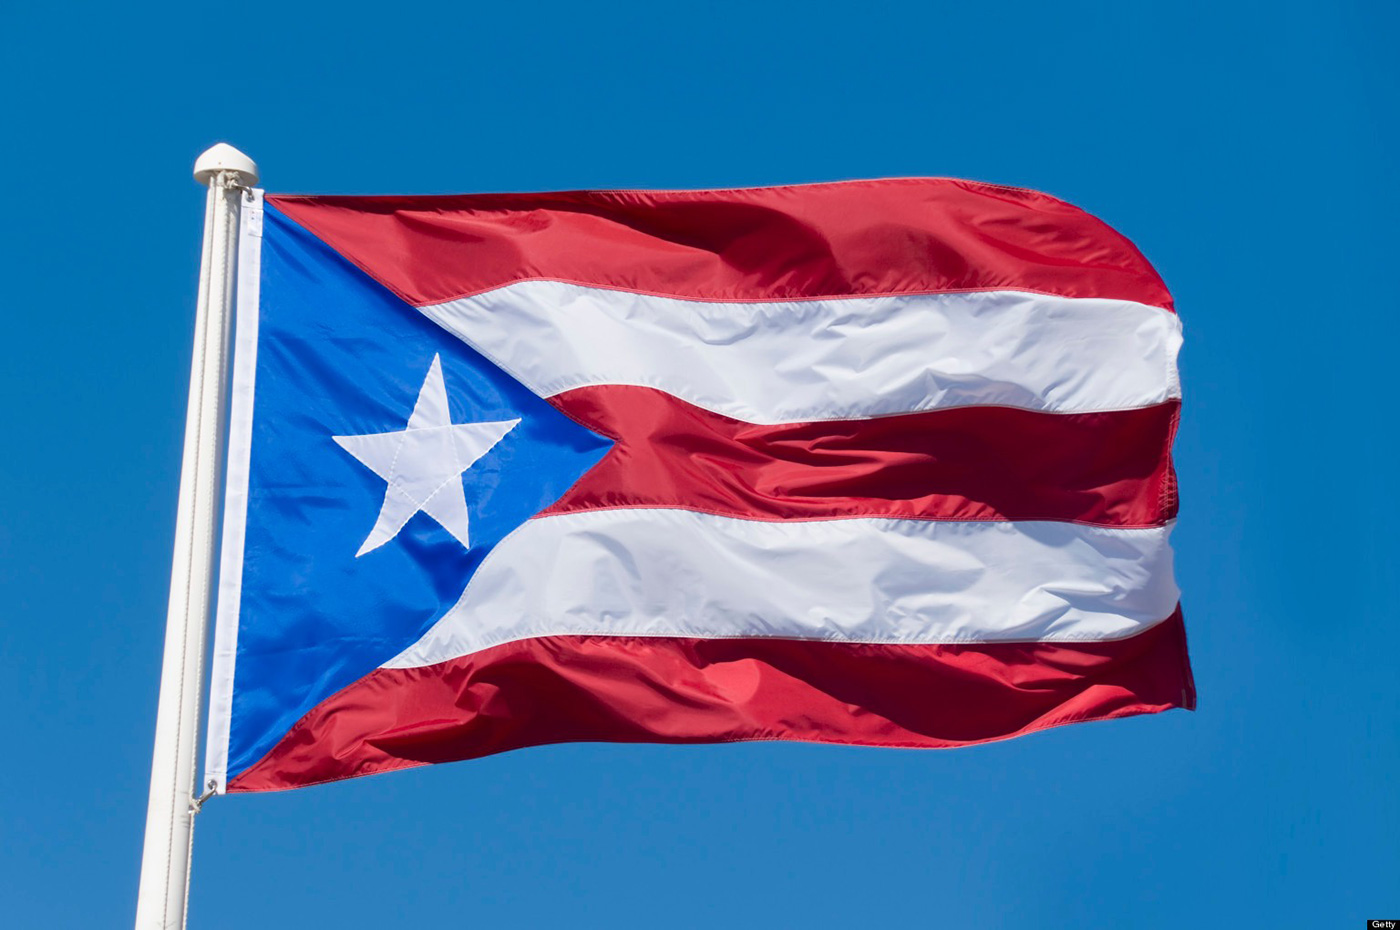 Puerto Rican flag. On September 20, 2017 Puerto Rico was devastated by category 4 Hurricane Maria. Over 4 months after the initial devastation, Puerto Rico is still in great need and is working to rebuild. It is our goal to work collaboratively within the UMass Lowell community to support Puerto Rico. There are many within our UMass Lowell community who have been directly impacted because they have family on the island. Massachusetts has the fifth highest population of Puerto Ricans so the impact to our greater community is pretty extensive.